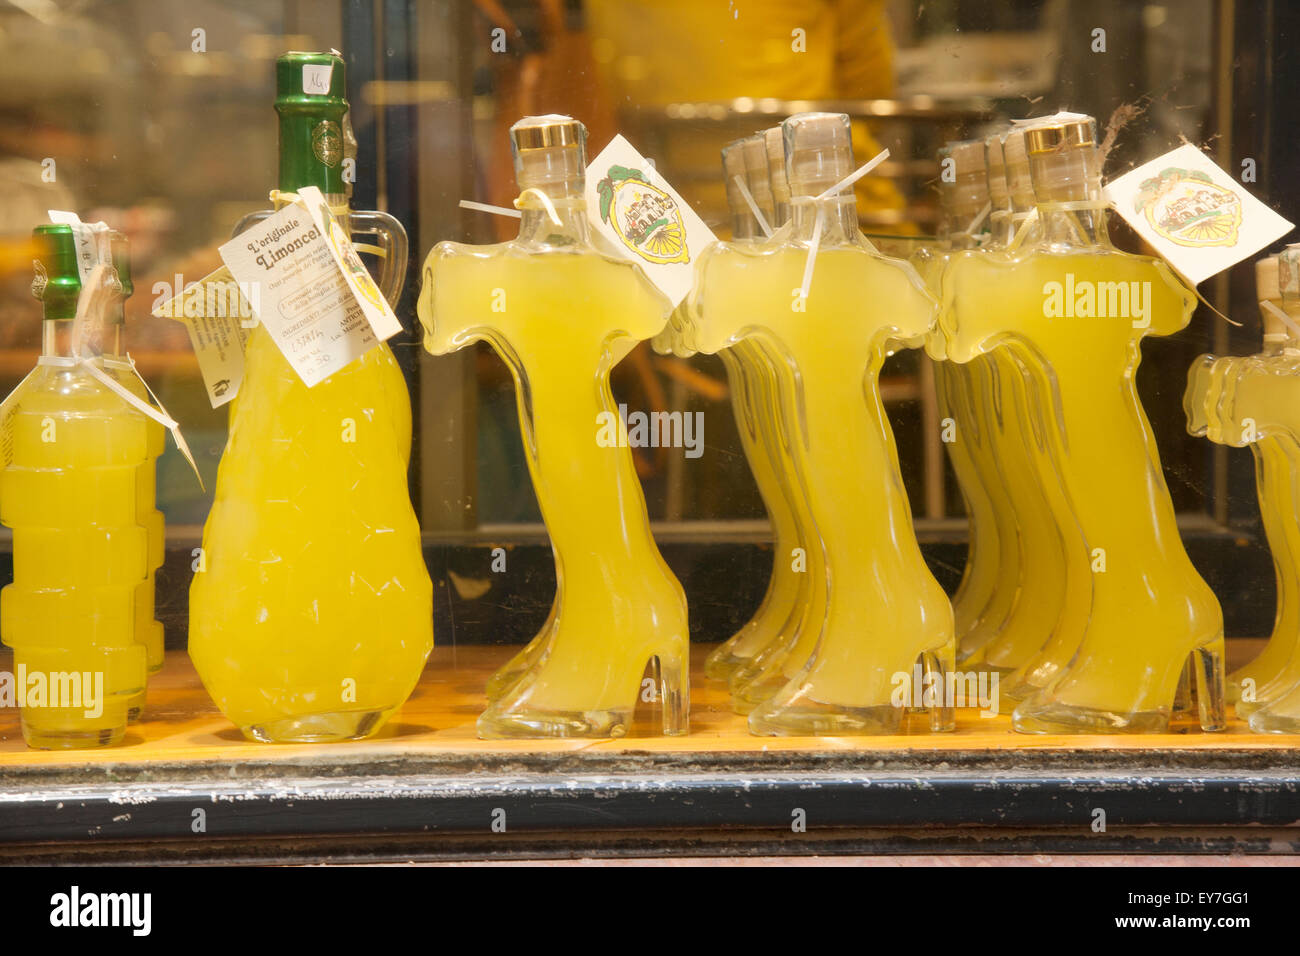 Shop With Limoncello Bottles Stock Photos Amp Shop With Limoncello Bottles Stock Images Alamy